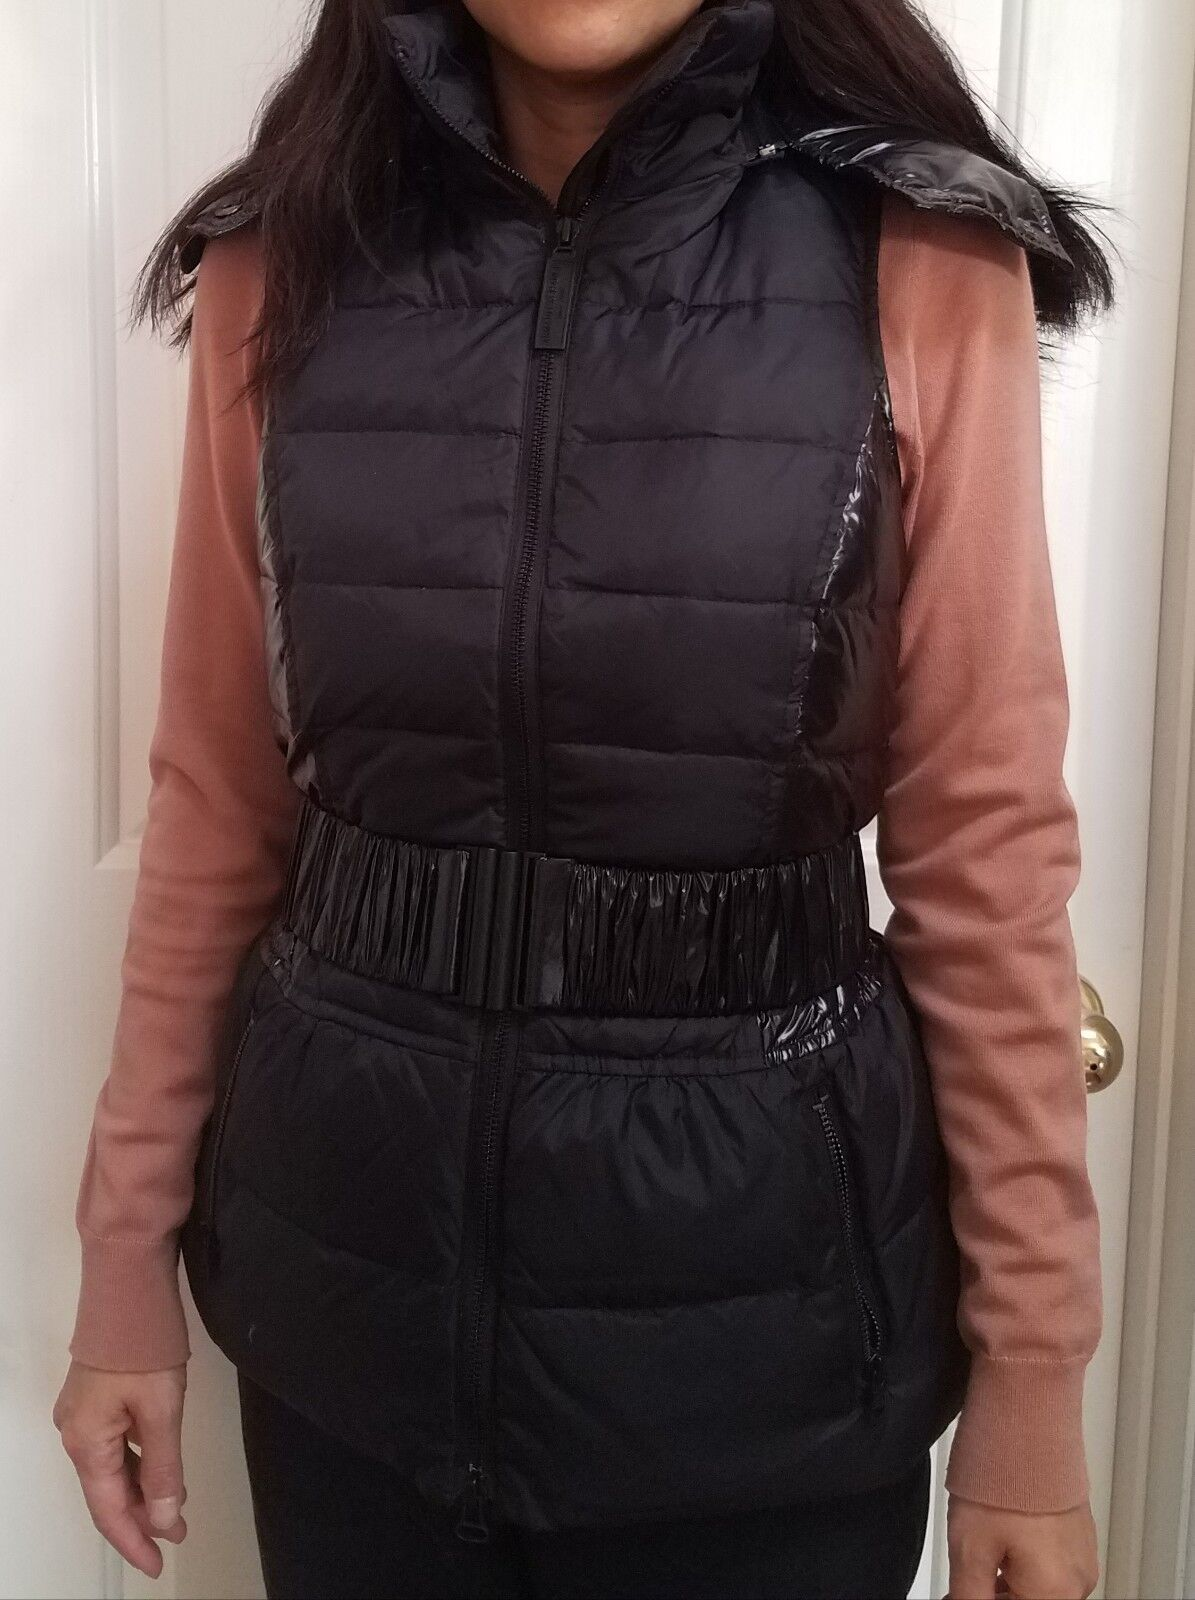 Armani Exchange Belted Hooded Puff Vest,NWT(Size-S)